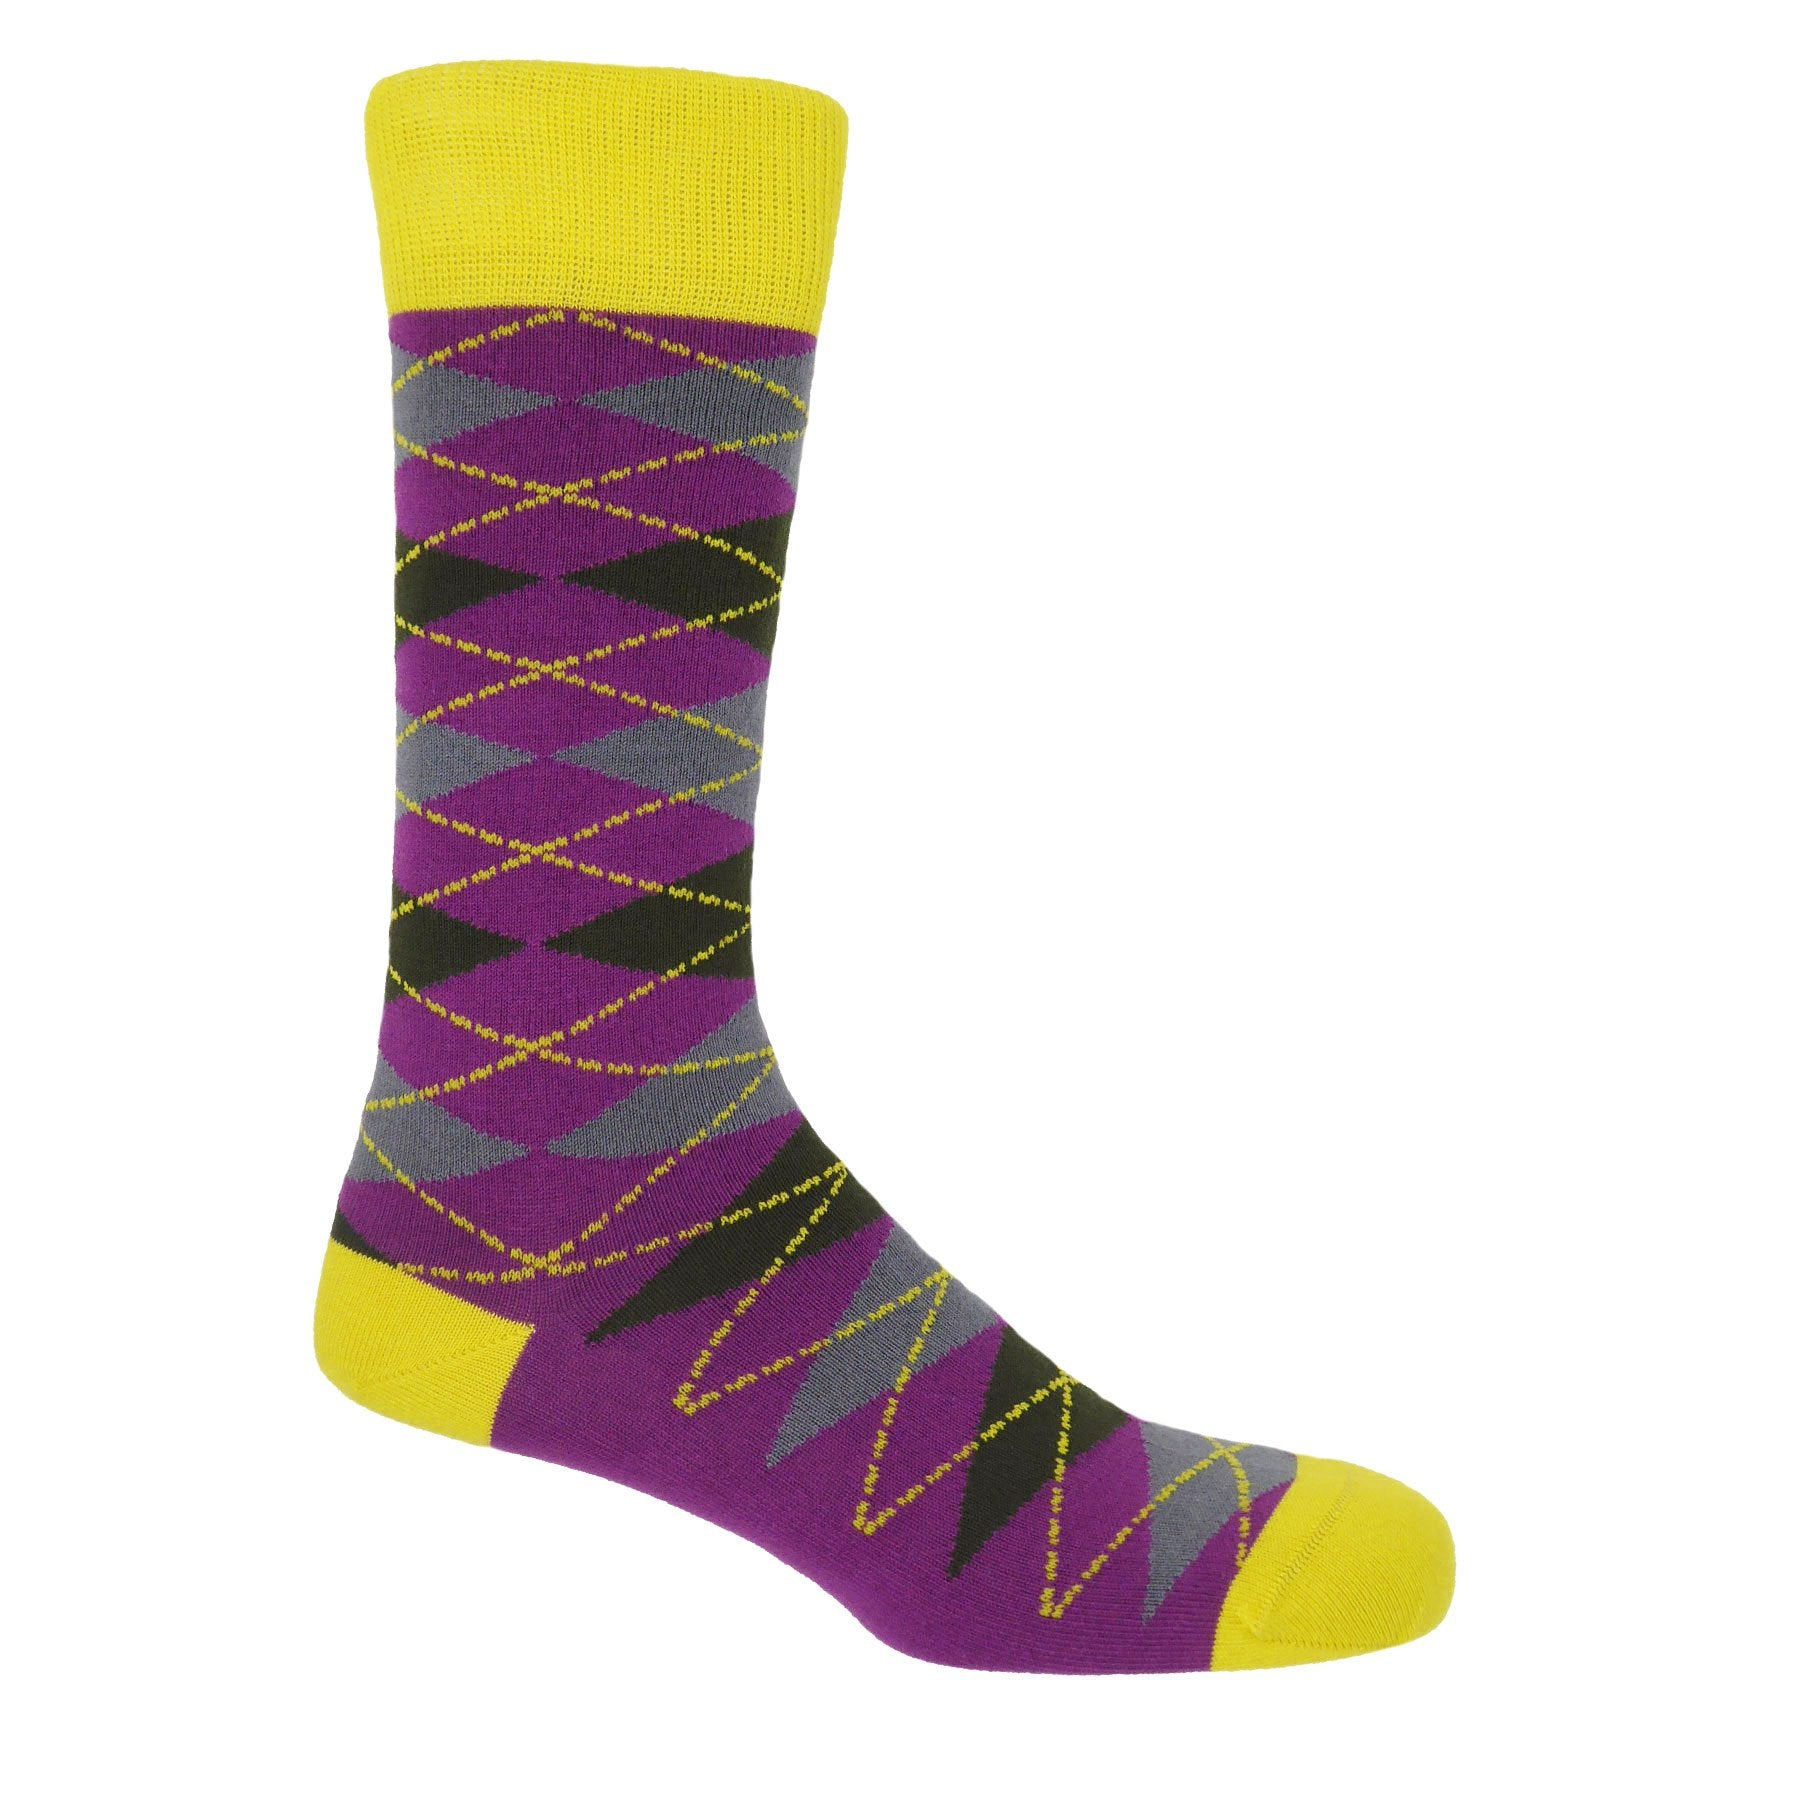 Sunshine Argyle Socks